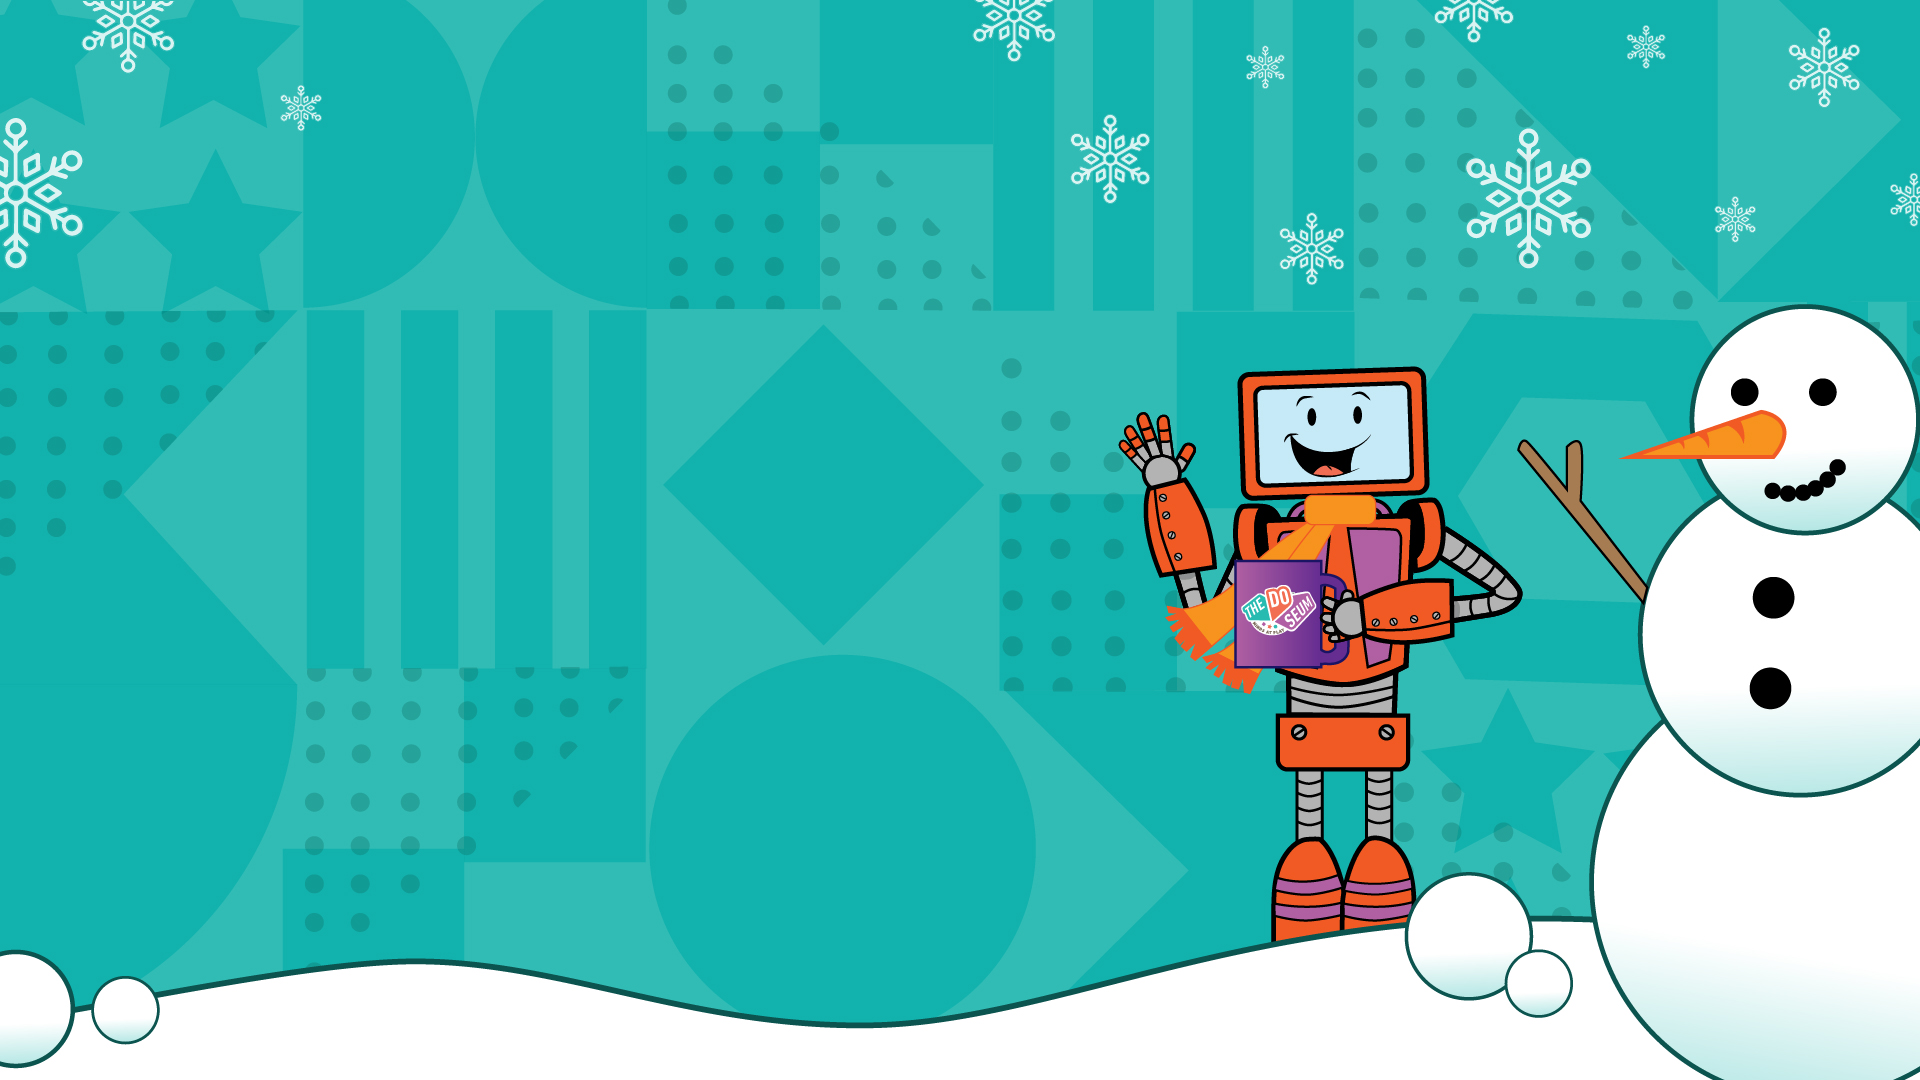 Baxter the robot holding coffee next to a snowman